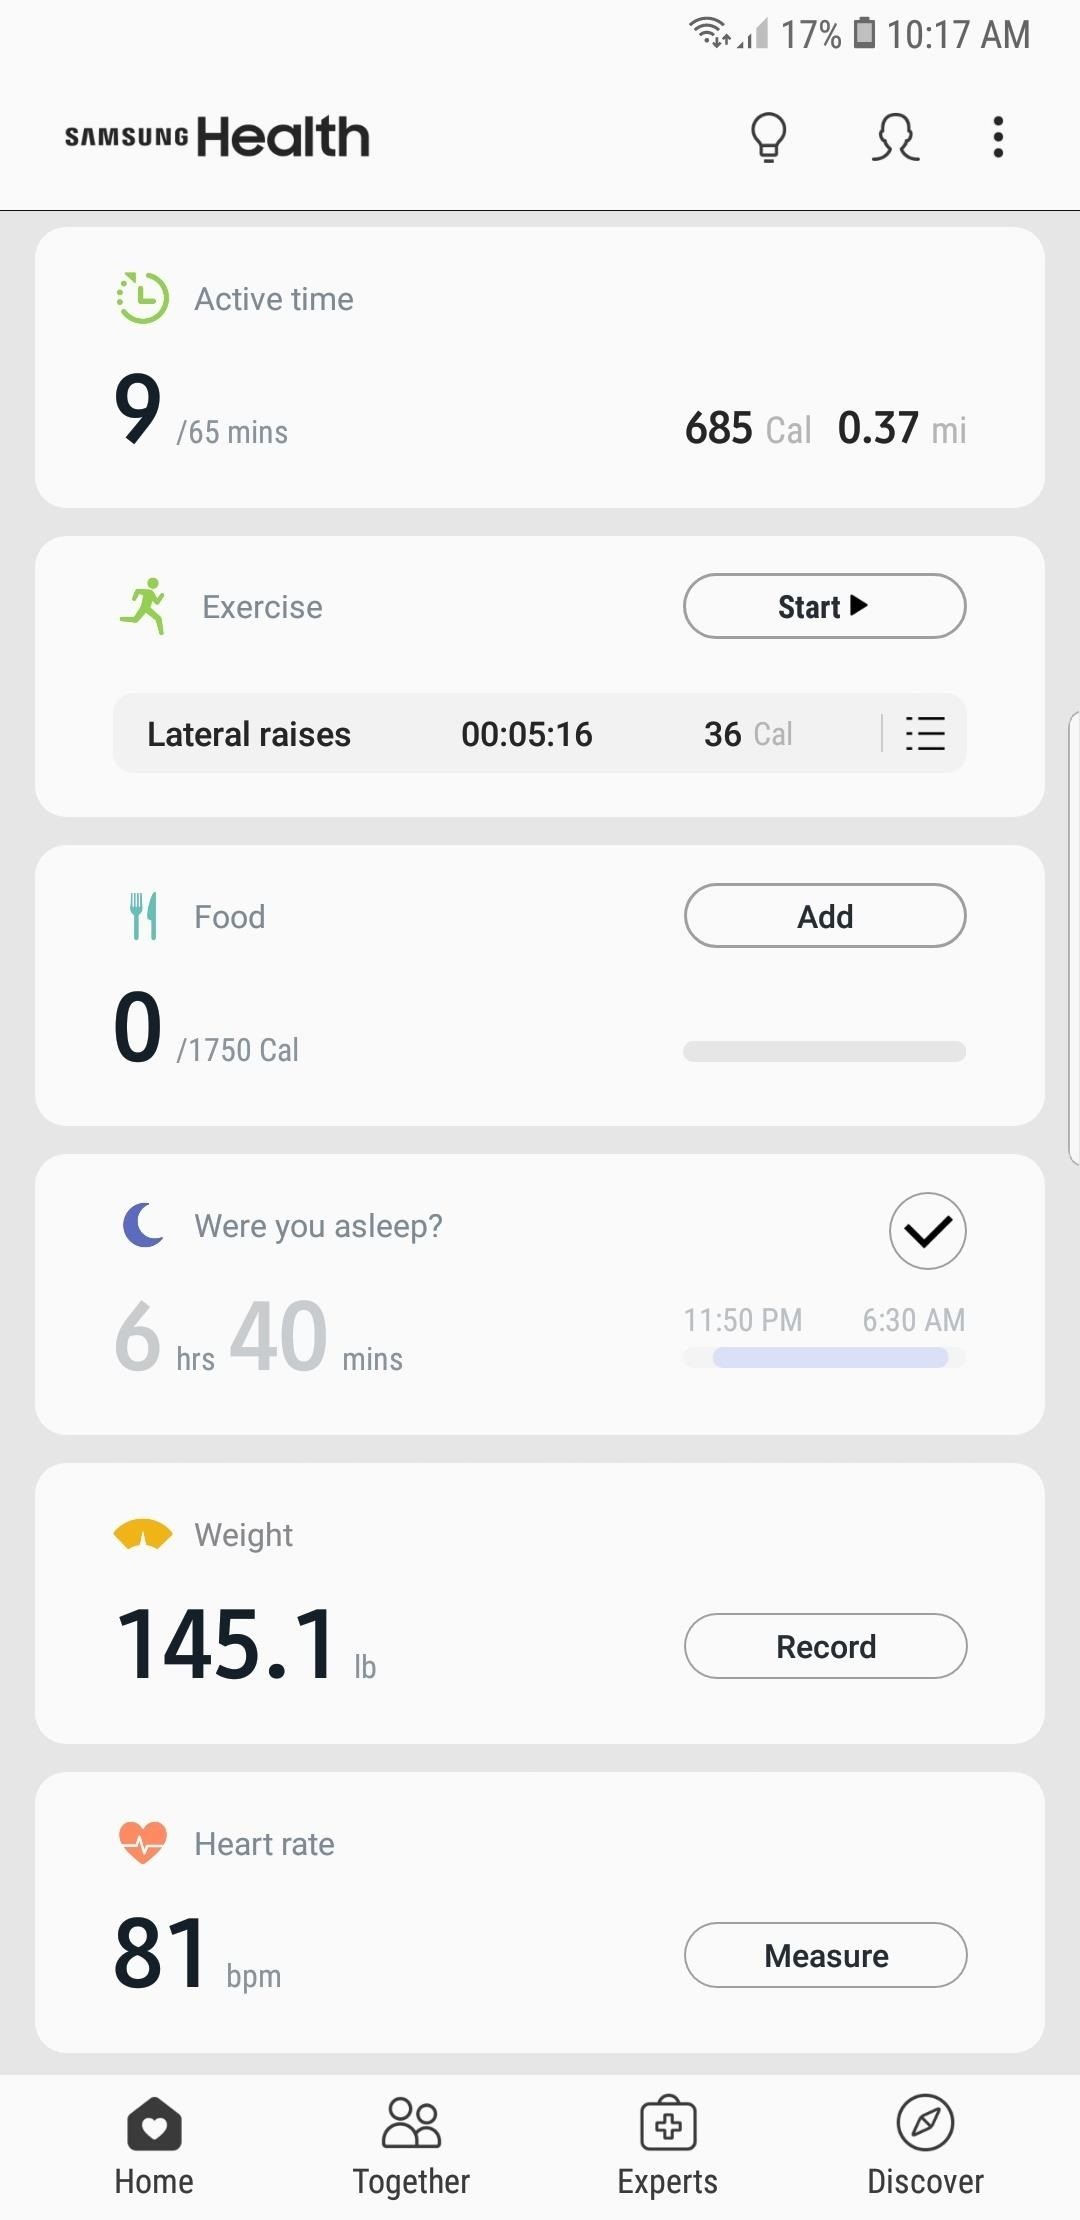 How To Record Your Sleep Patterns With Samsung Health - No Wearables Required [19659011] How To Record Your Sleep Patterns With Samsung Health - No Wearables Required